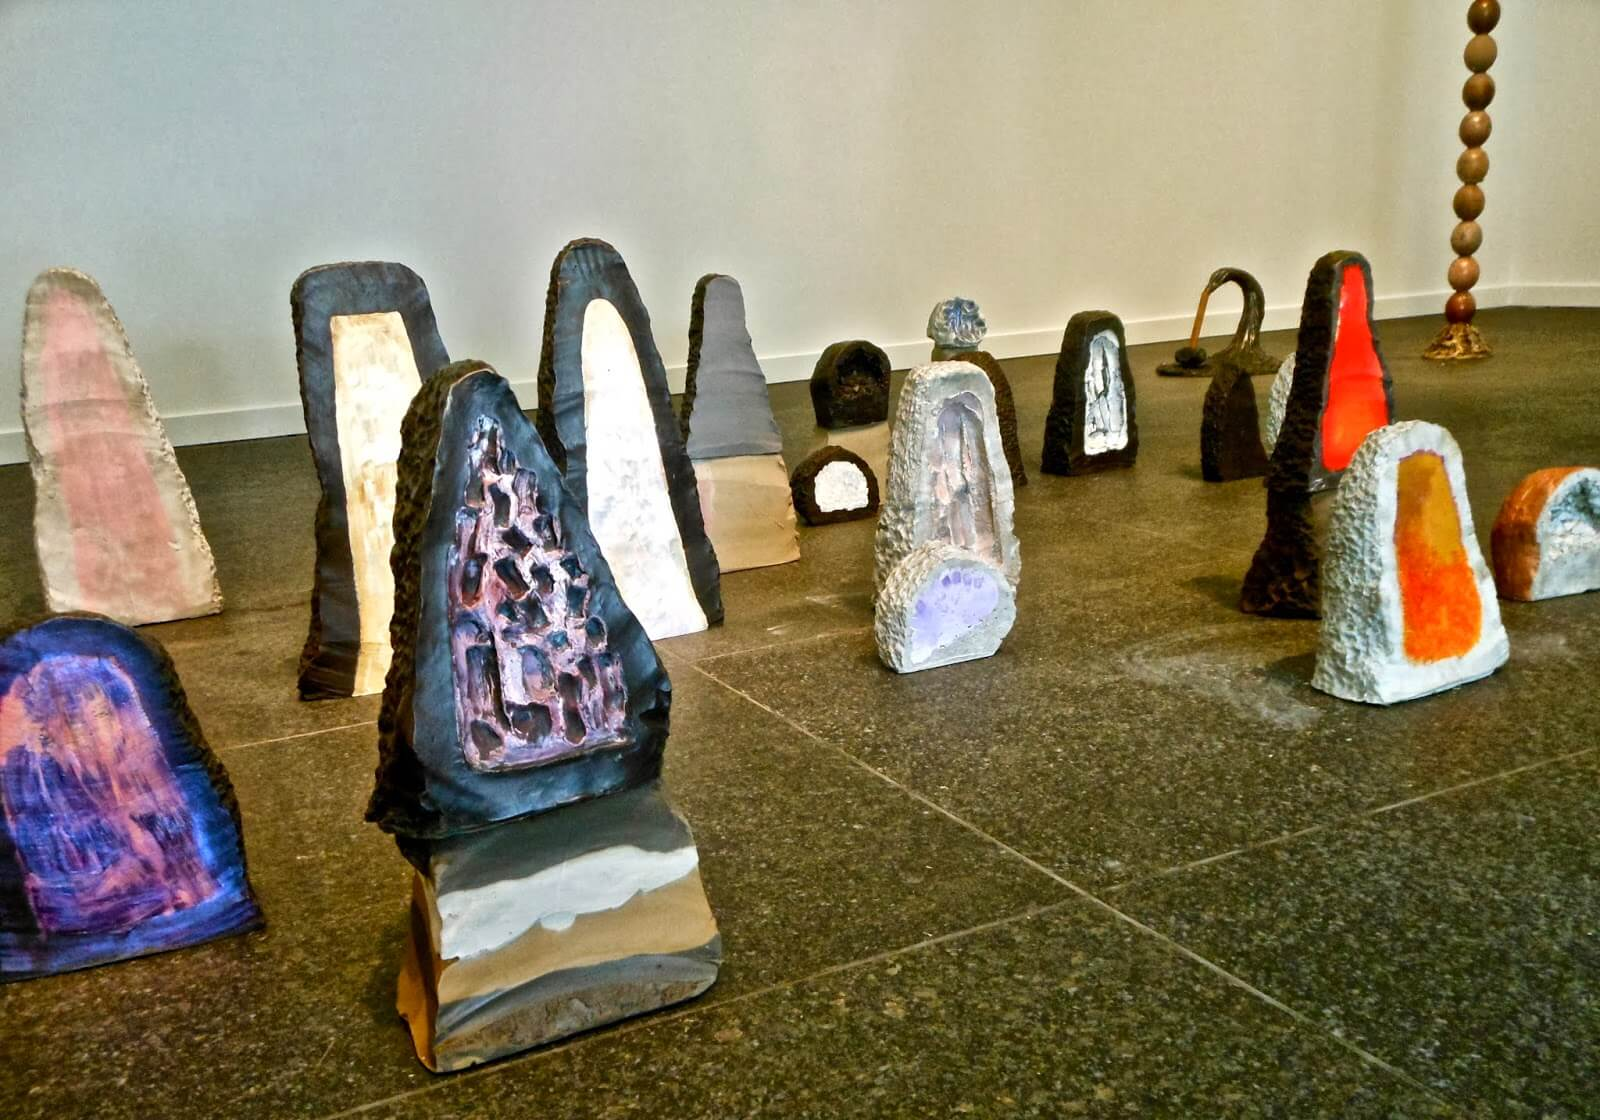 Erika Verzutti, Installation at 2013 Carnegie International, cast bronze and concrete with acrylic, 2013.